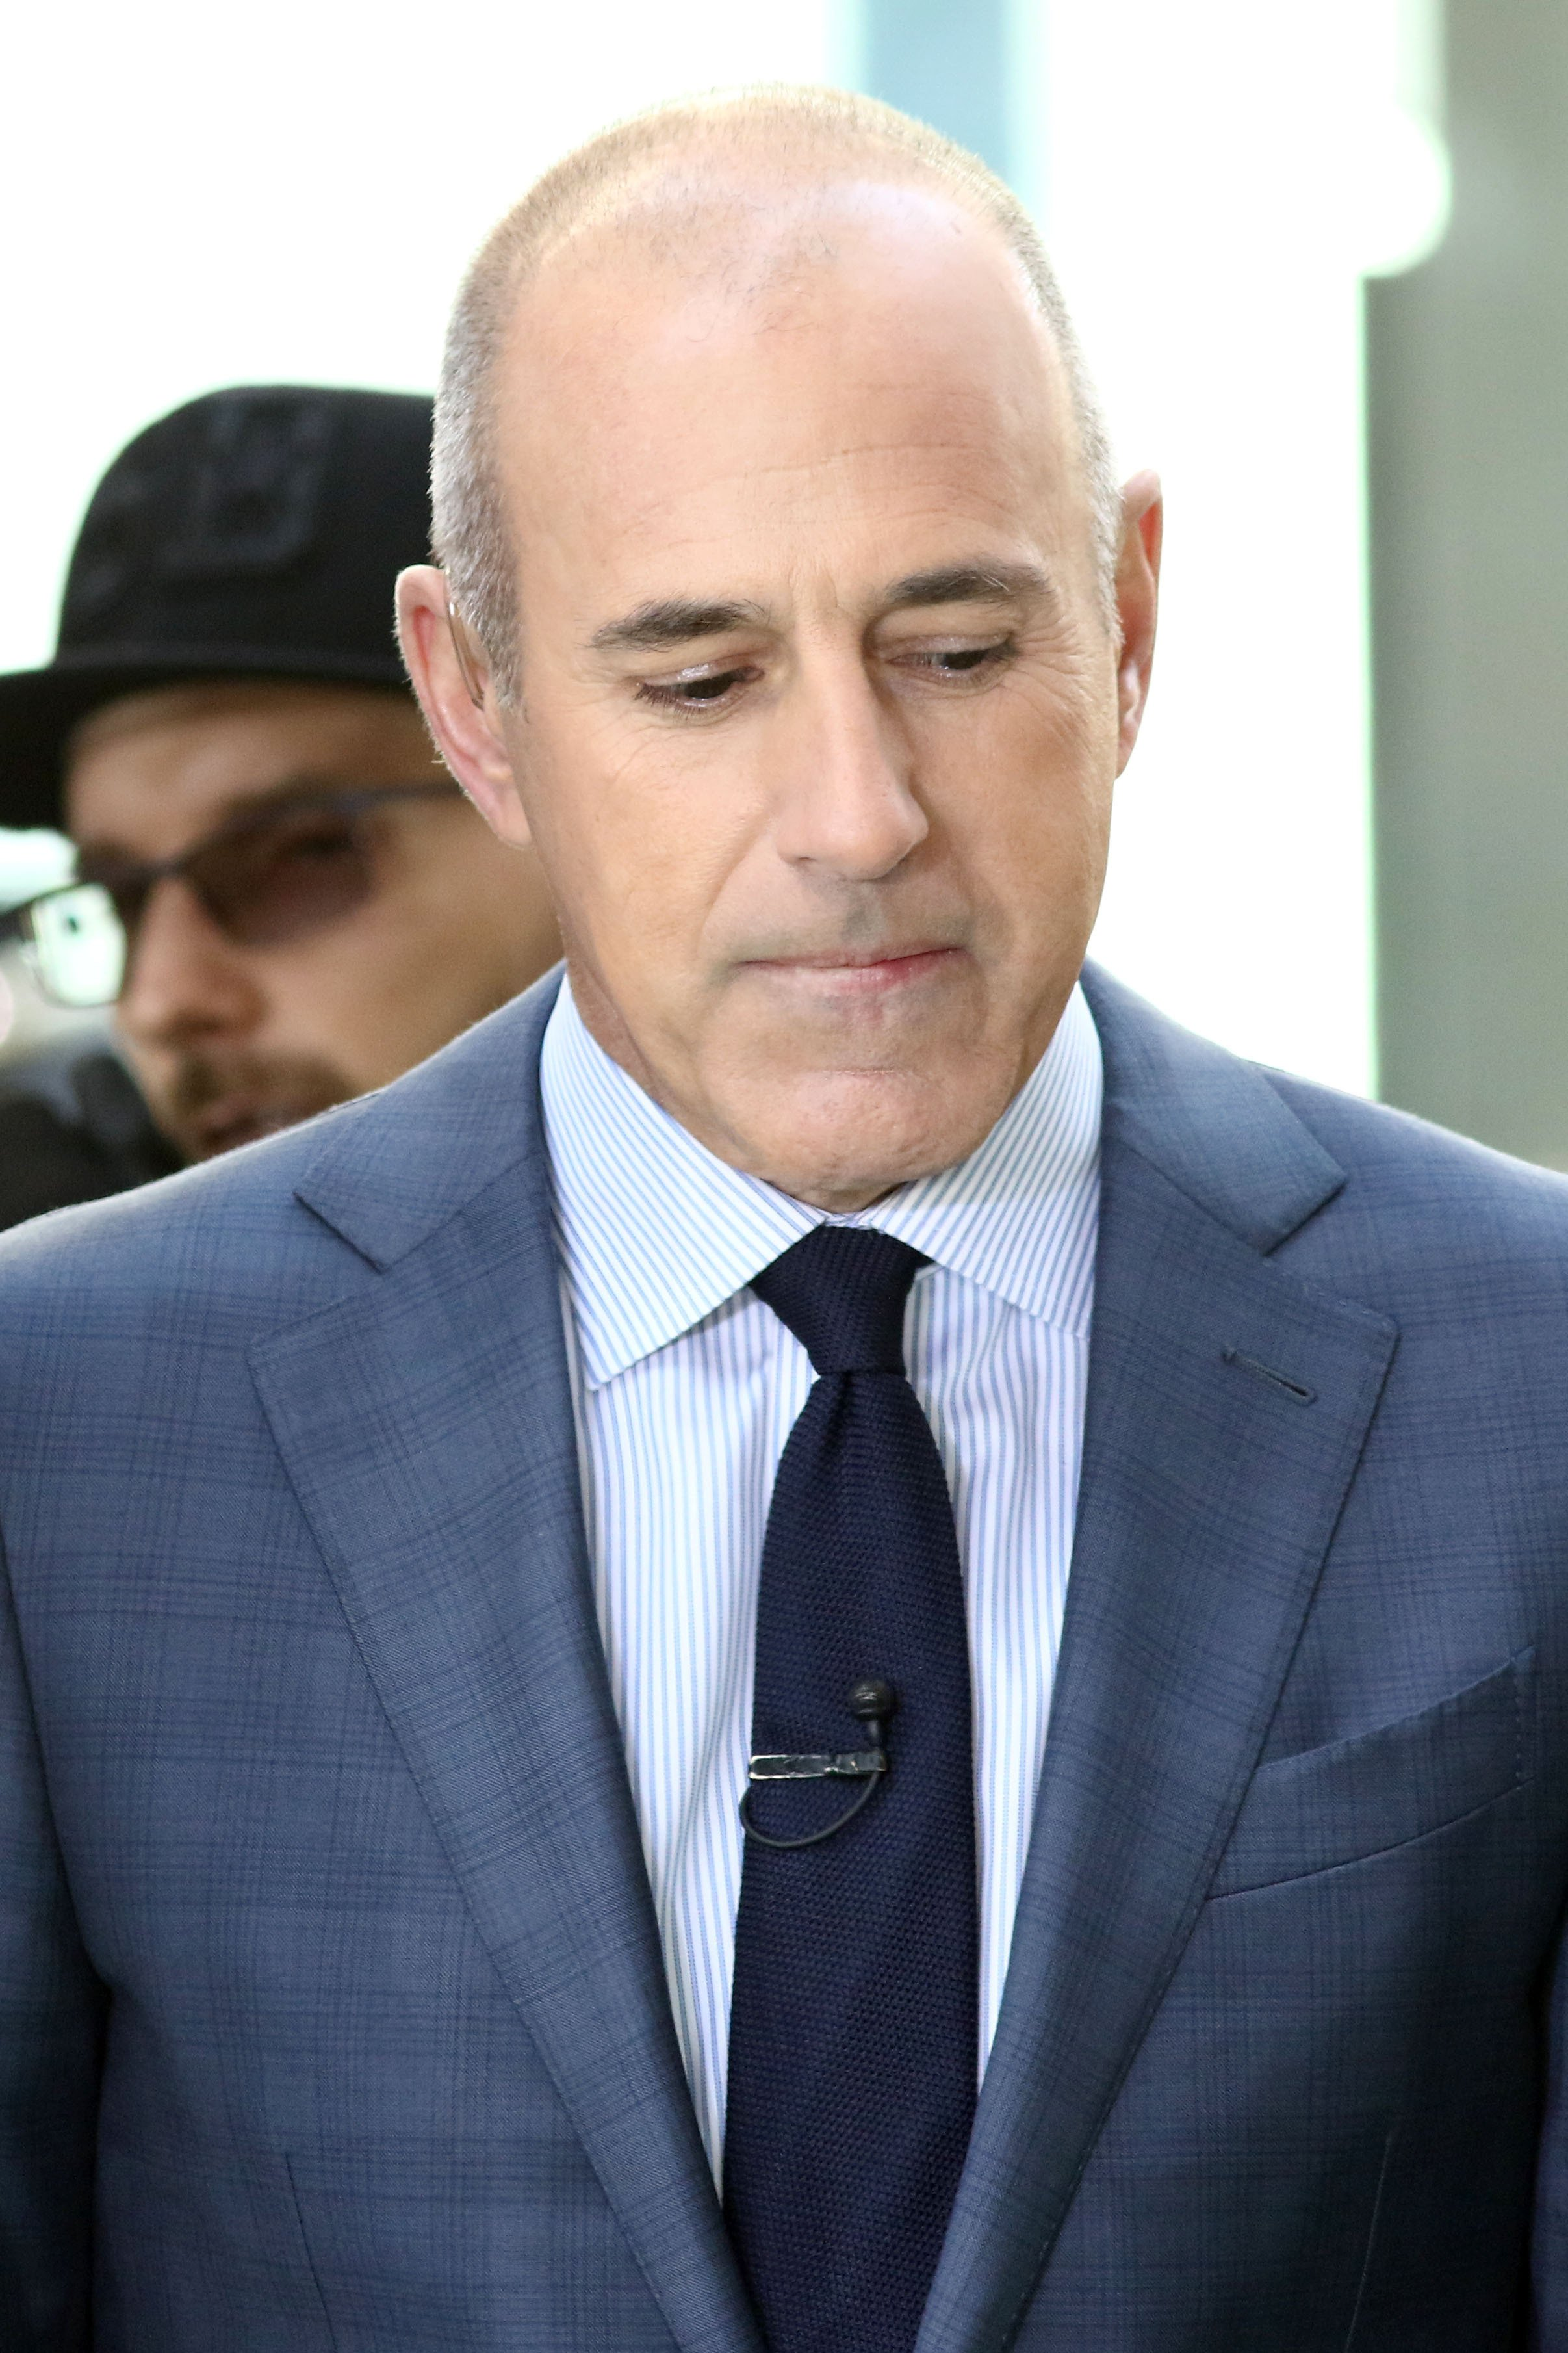 """Matt Lauer, former host of """"Today"""" Show on NBC 